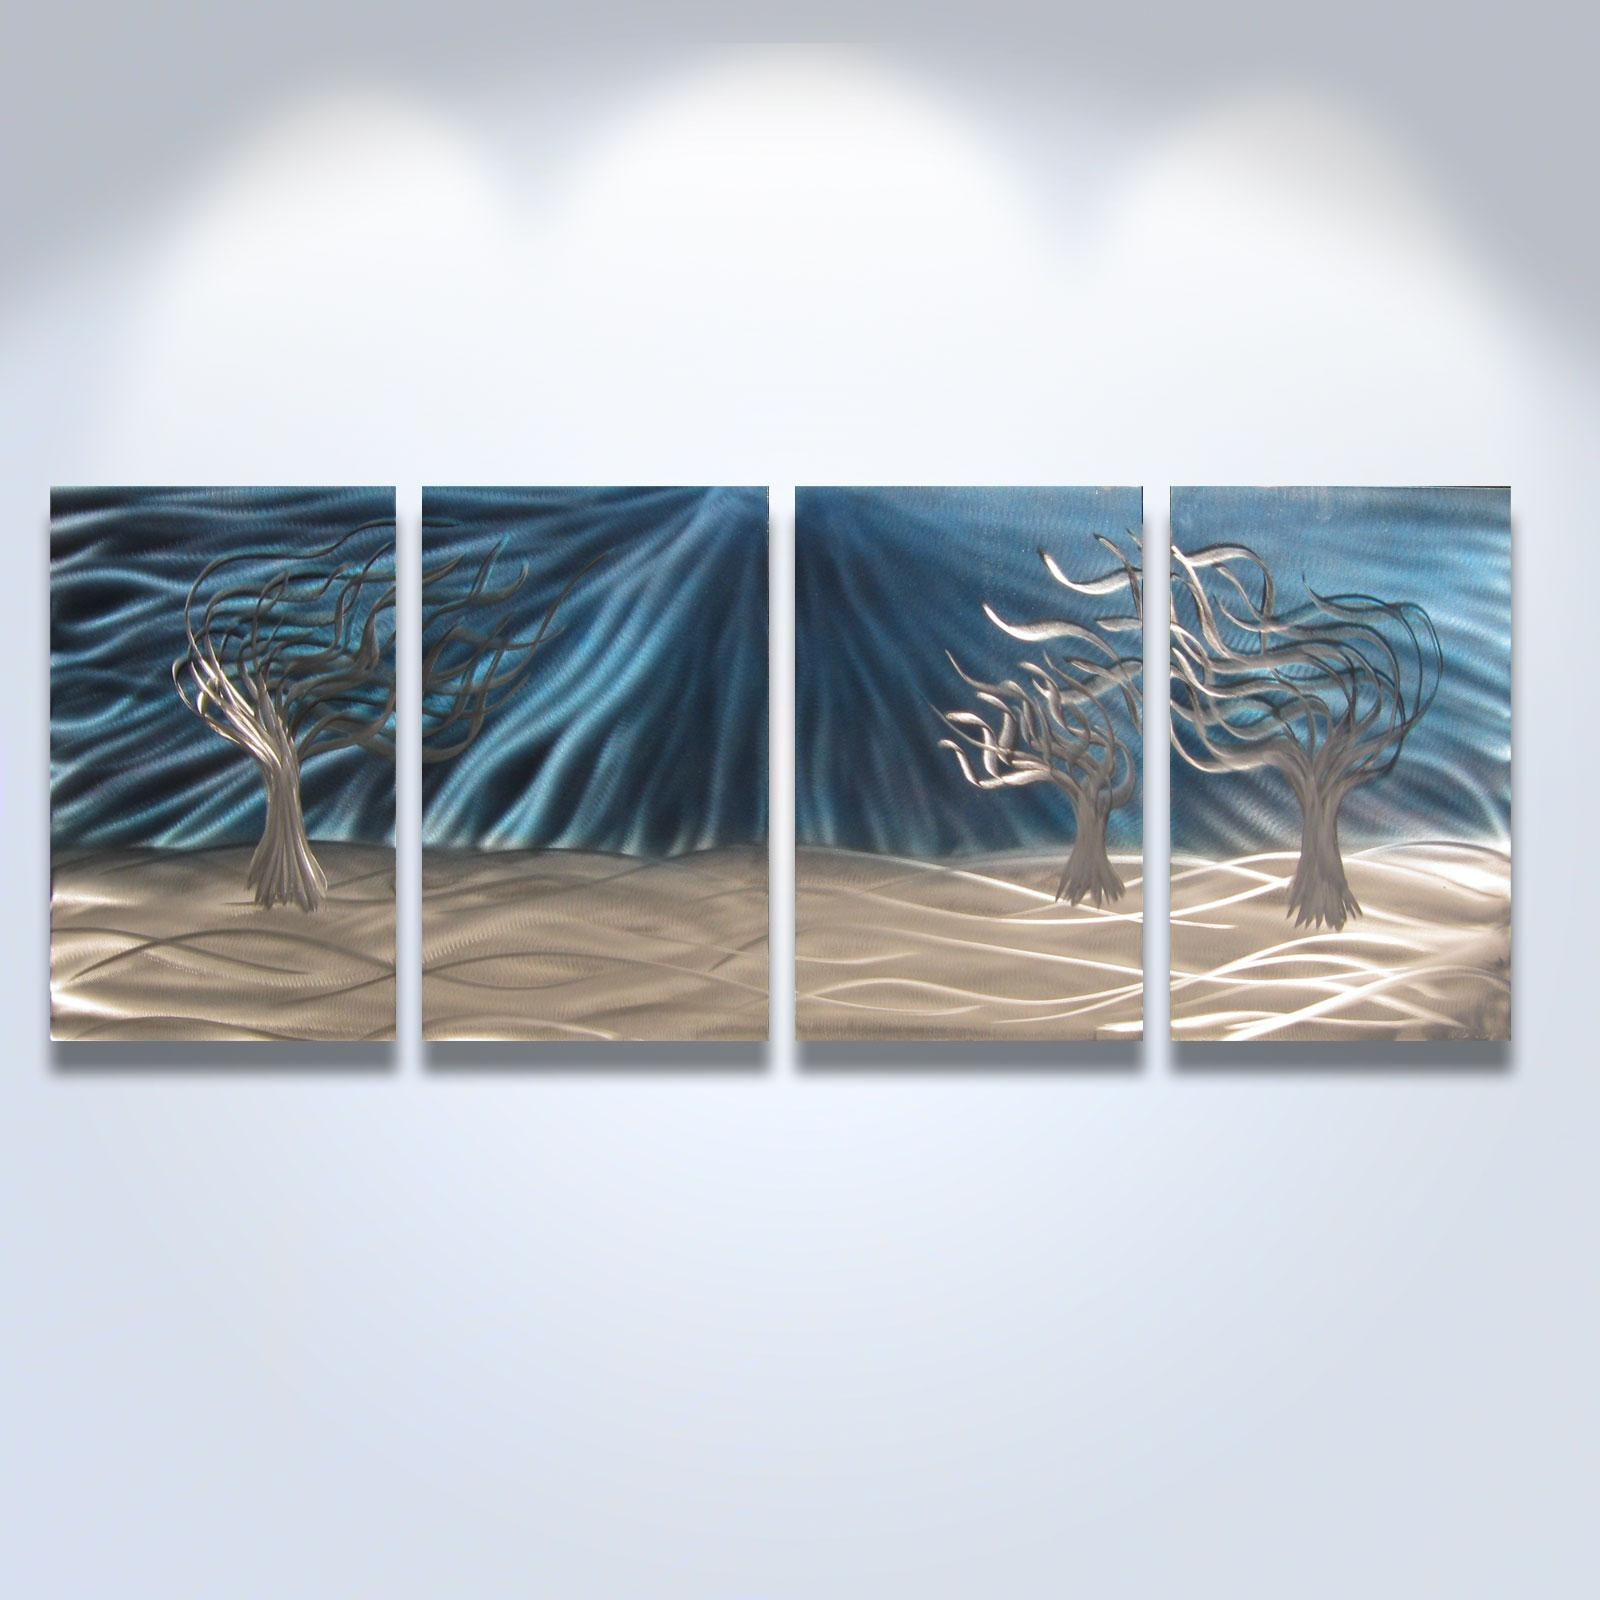 3 Trees Blue – Abstract Metal Wall Art Contemporary Modern Decor With Regard To Blue And Silver Wall Art (Image 2 of 20)